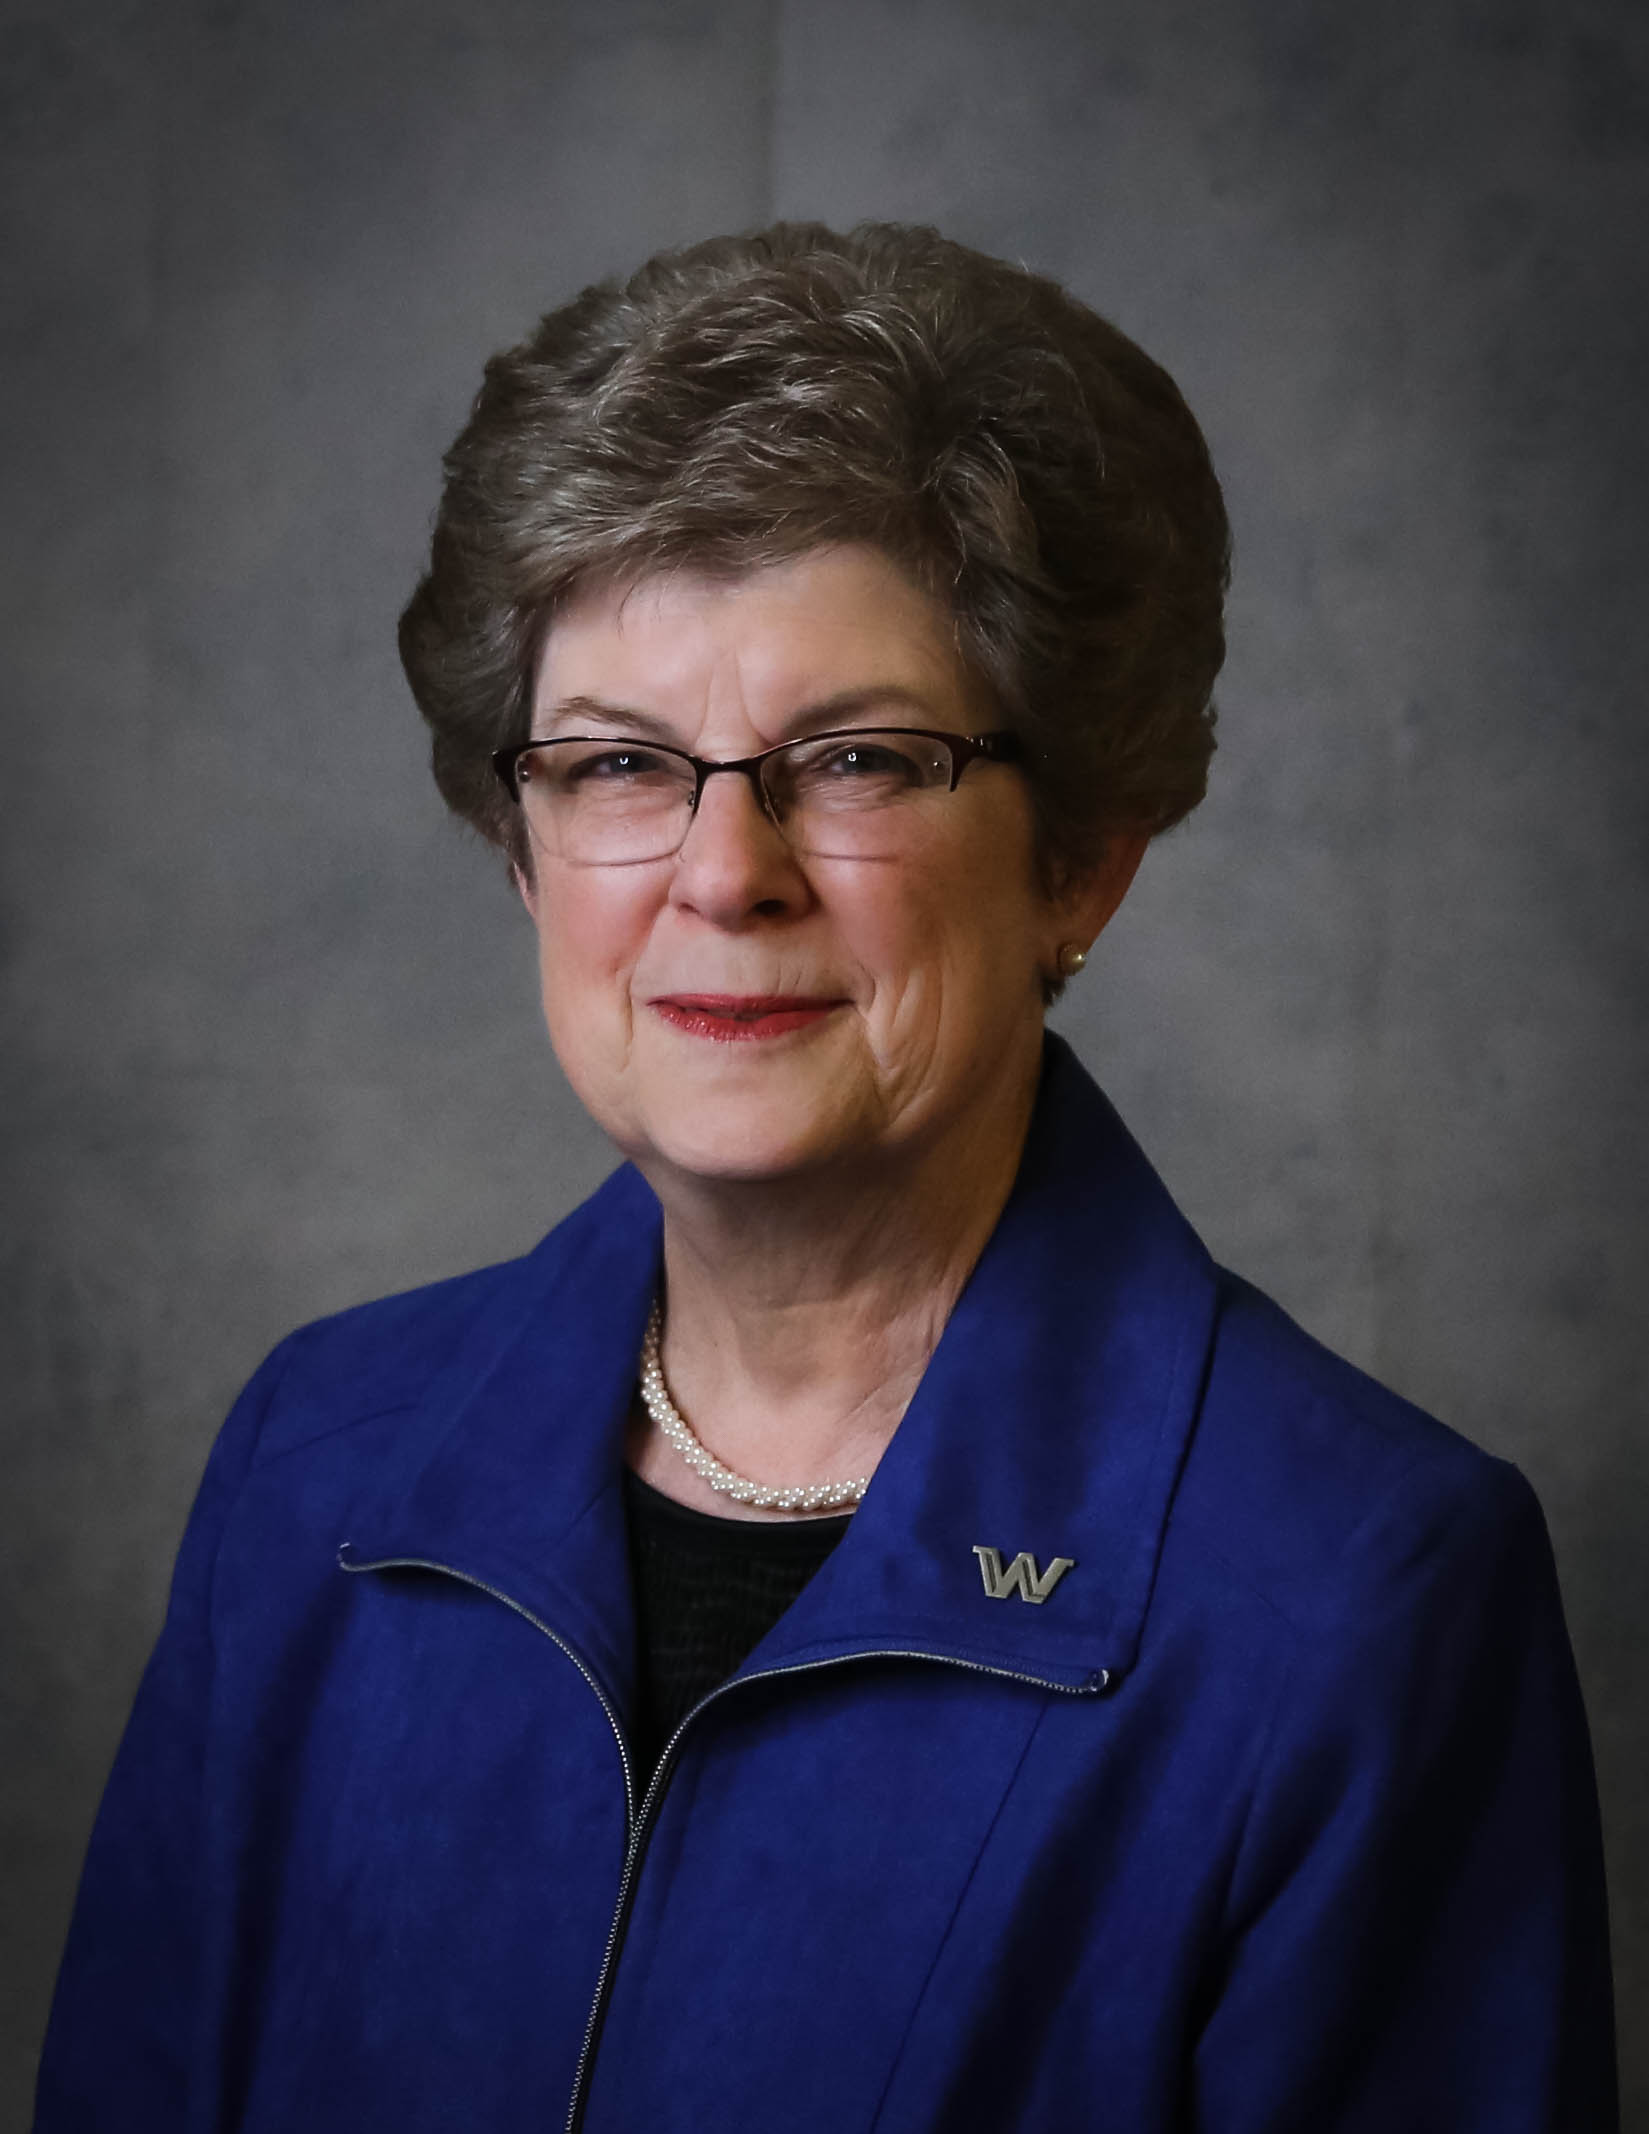 Ms. F. Lynne Klemke (Chair)